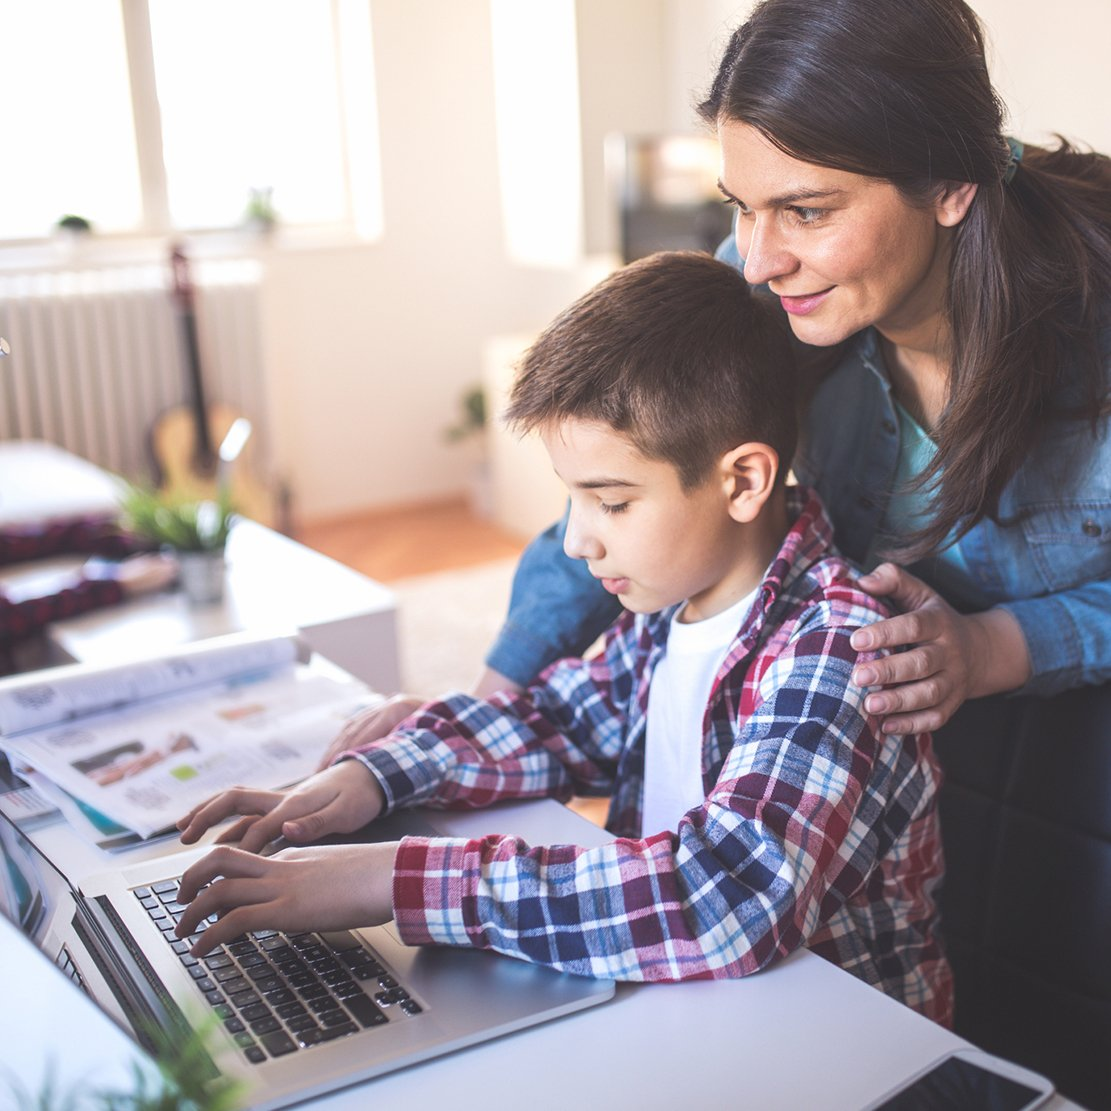 The Biggest Cybersecurity Questions for Parents